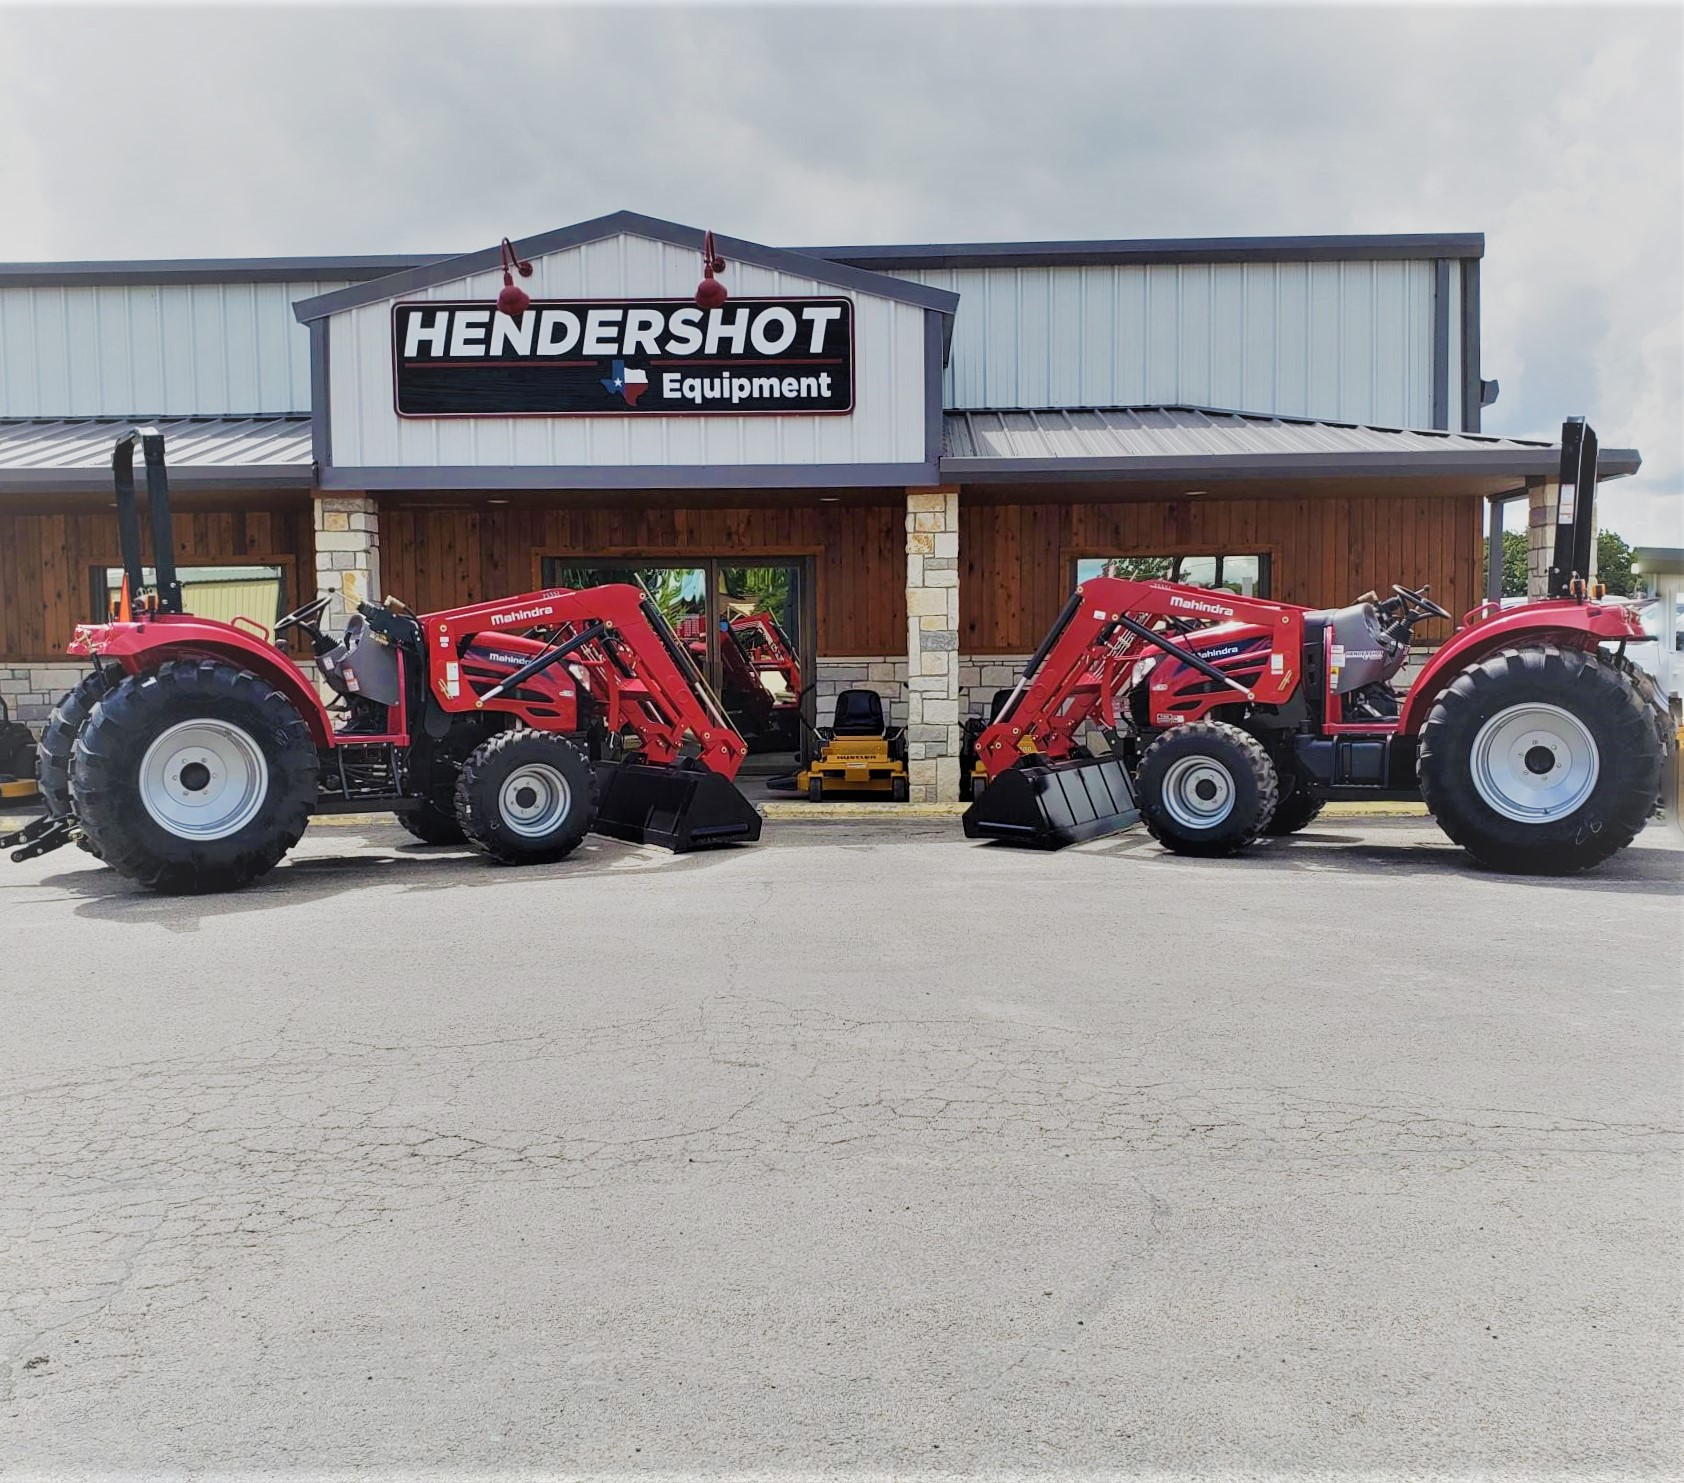 Mahindra Tractors for sale at Hendershot Equipment. In Stephenville, Texas. Near Tolar, Granbury, Dublin, Comanche, Glen Roase and Hico, Texas.